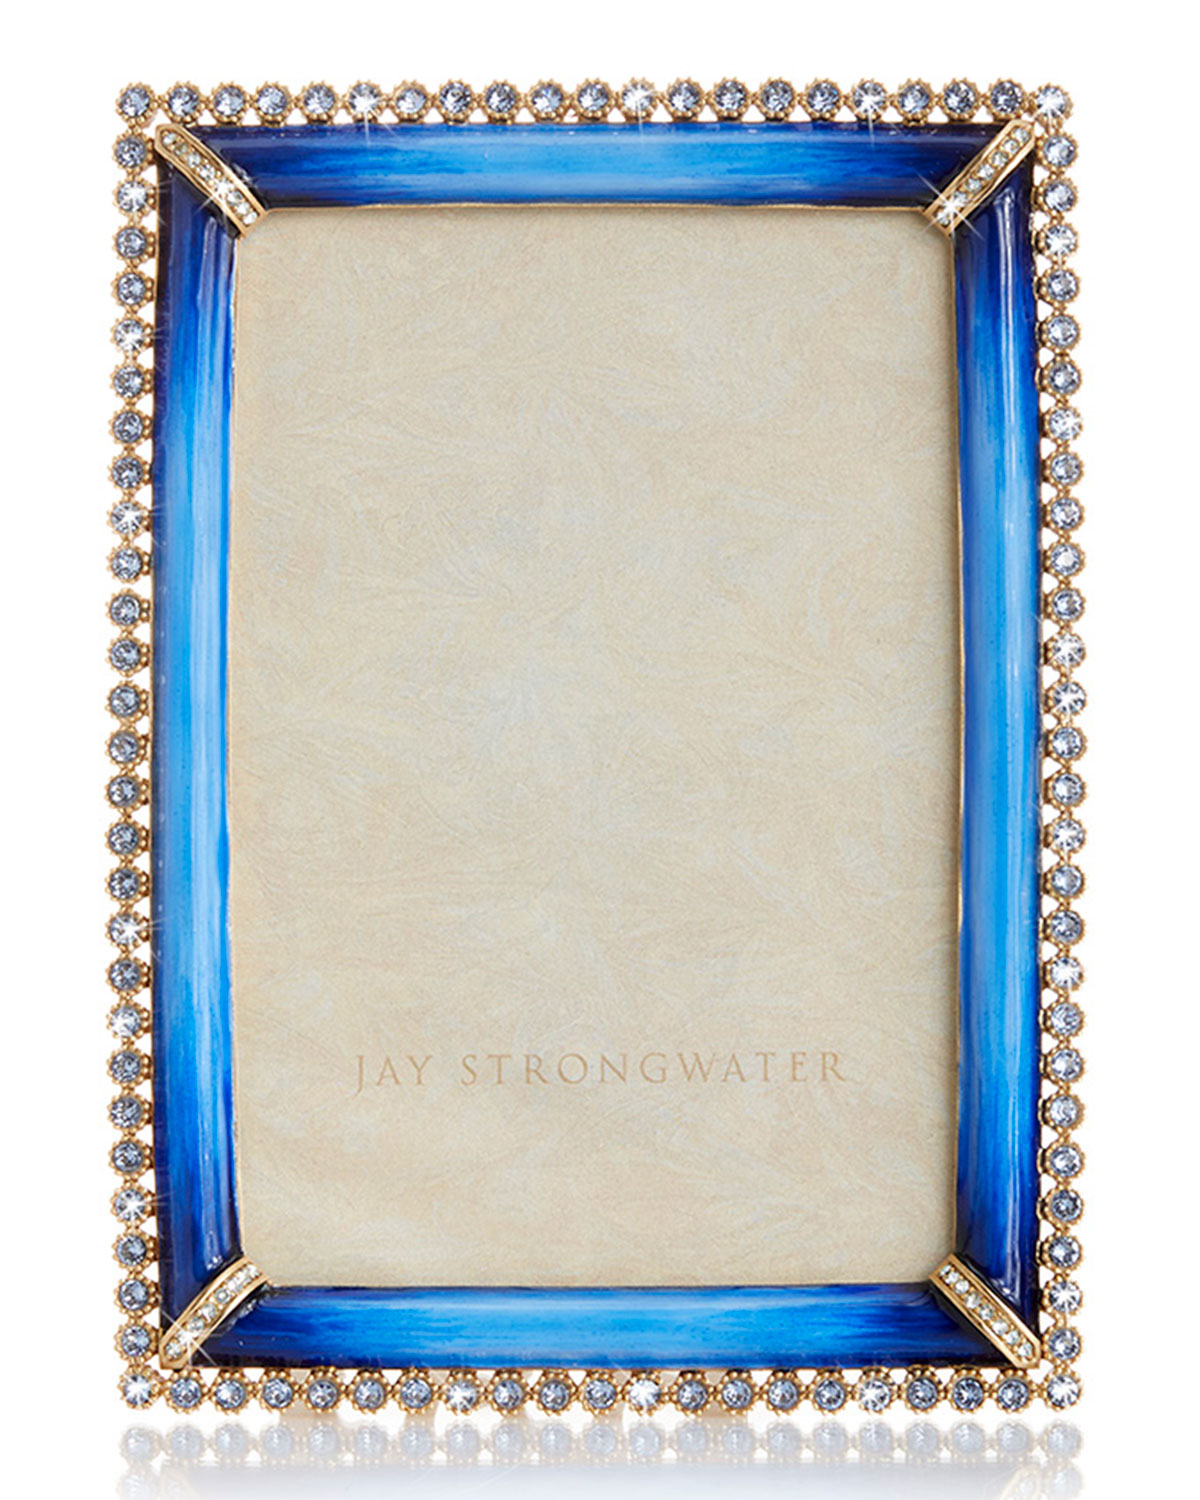 "Jay Strongwater STONE EDGE FRAME, 4"" X 6"""